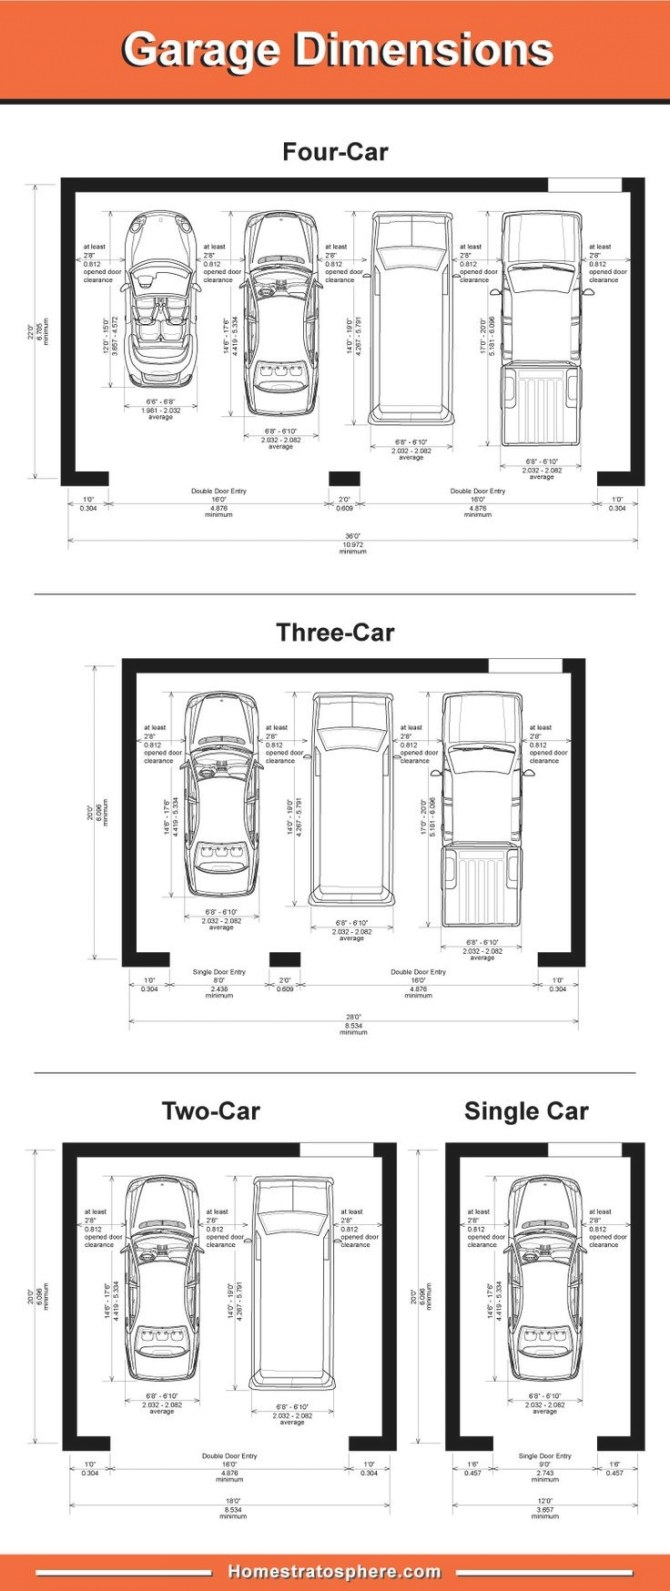 Standard Garage Dimensions For 1, 2, 3 And 4 Car Garages intended for 2 Car Garage Size